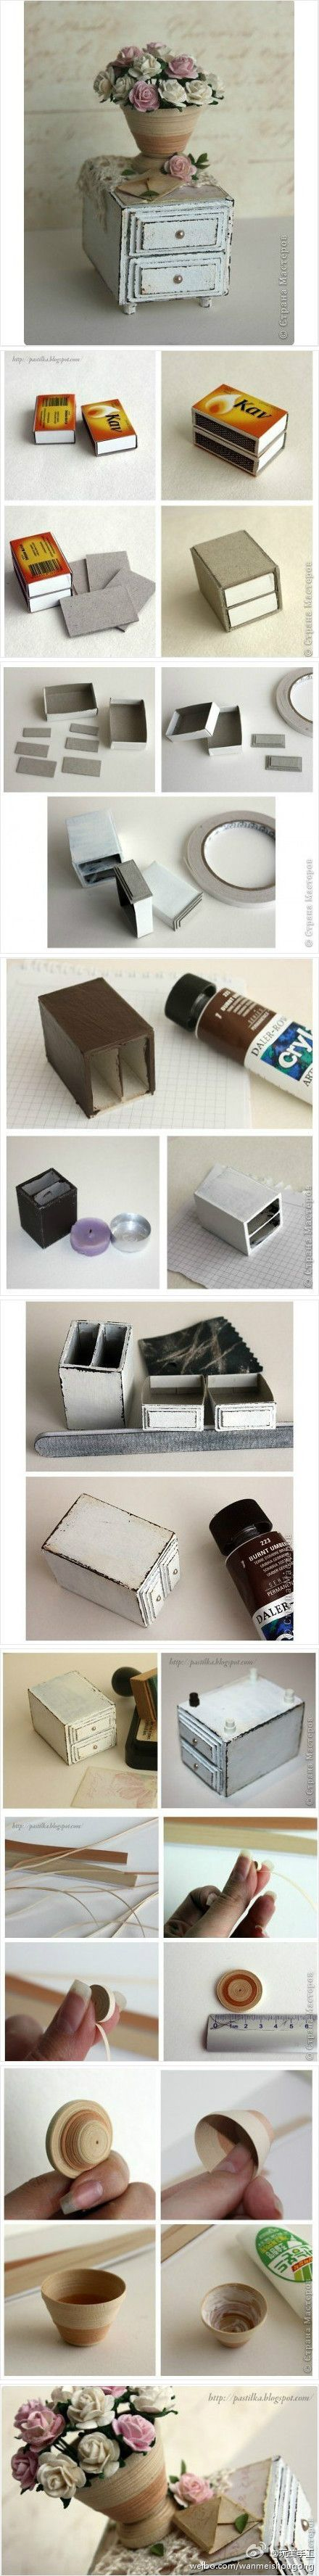 Dollhouse furnitures #match #box